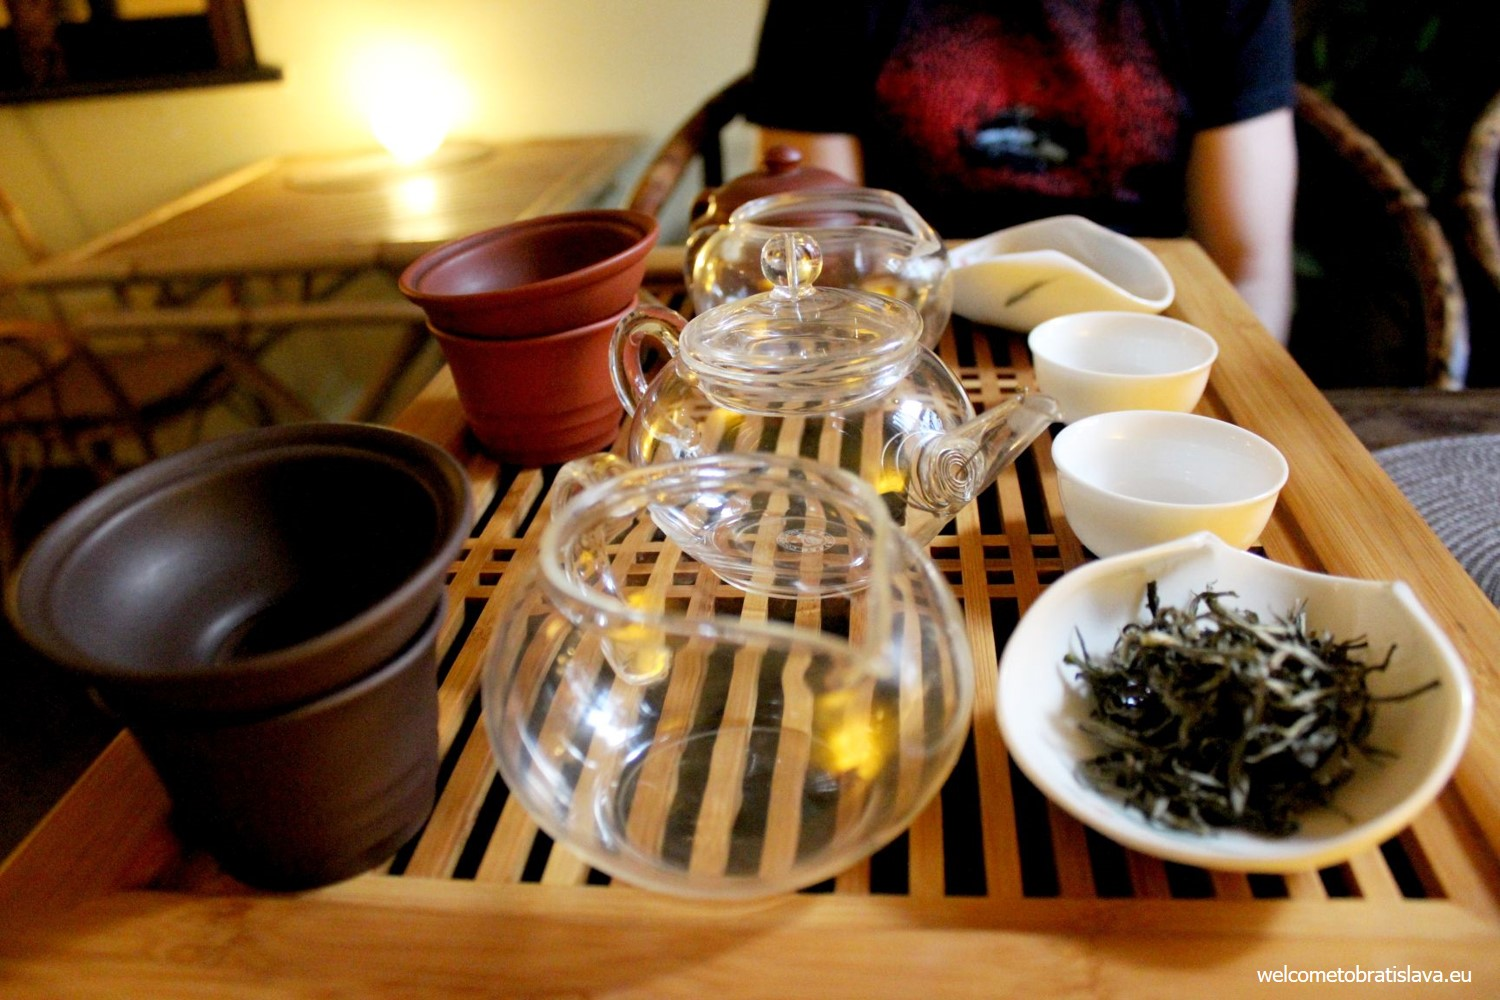 We have tried the Himalayan EverGreen from a small tea factory Sandakphu with rich aroma of flowers and nectar.